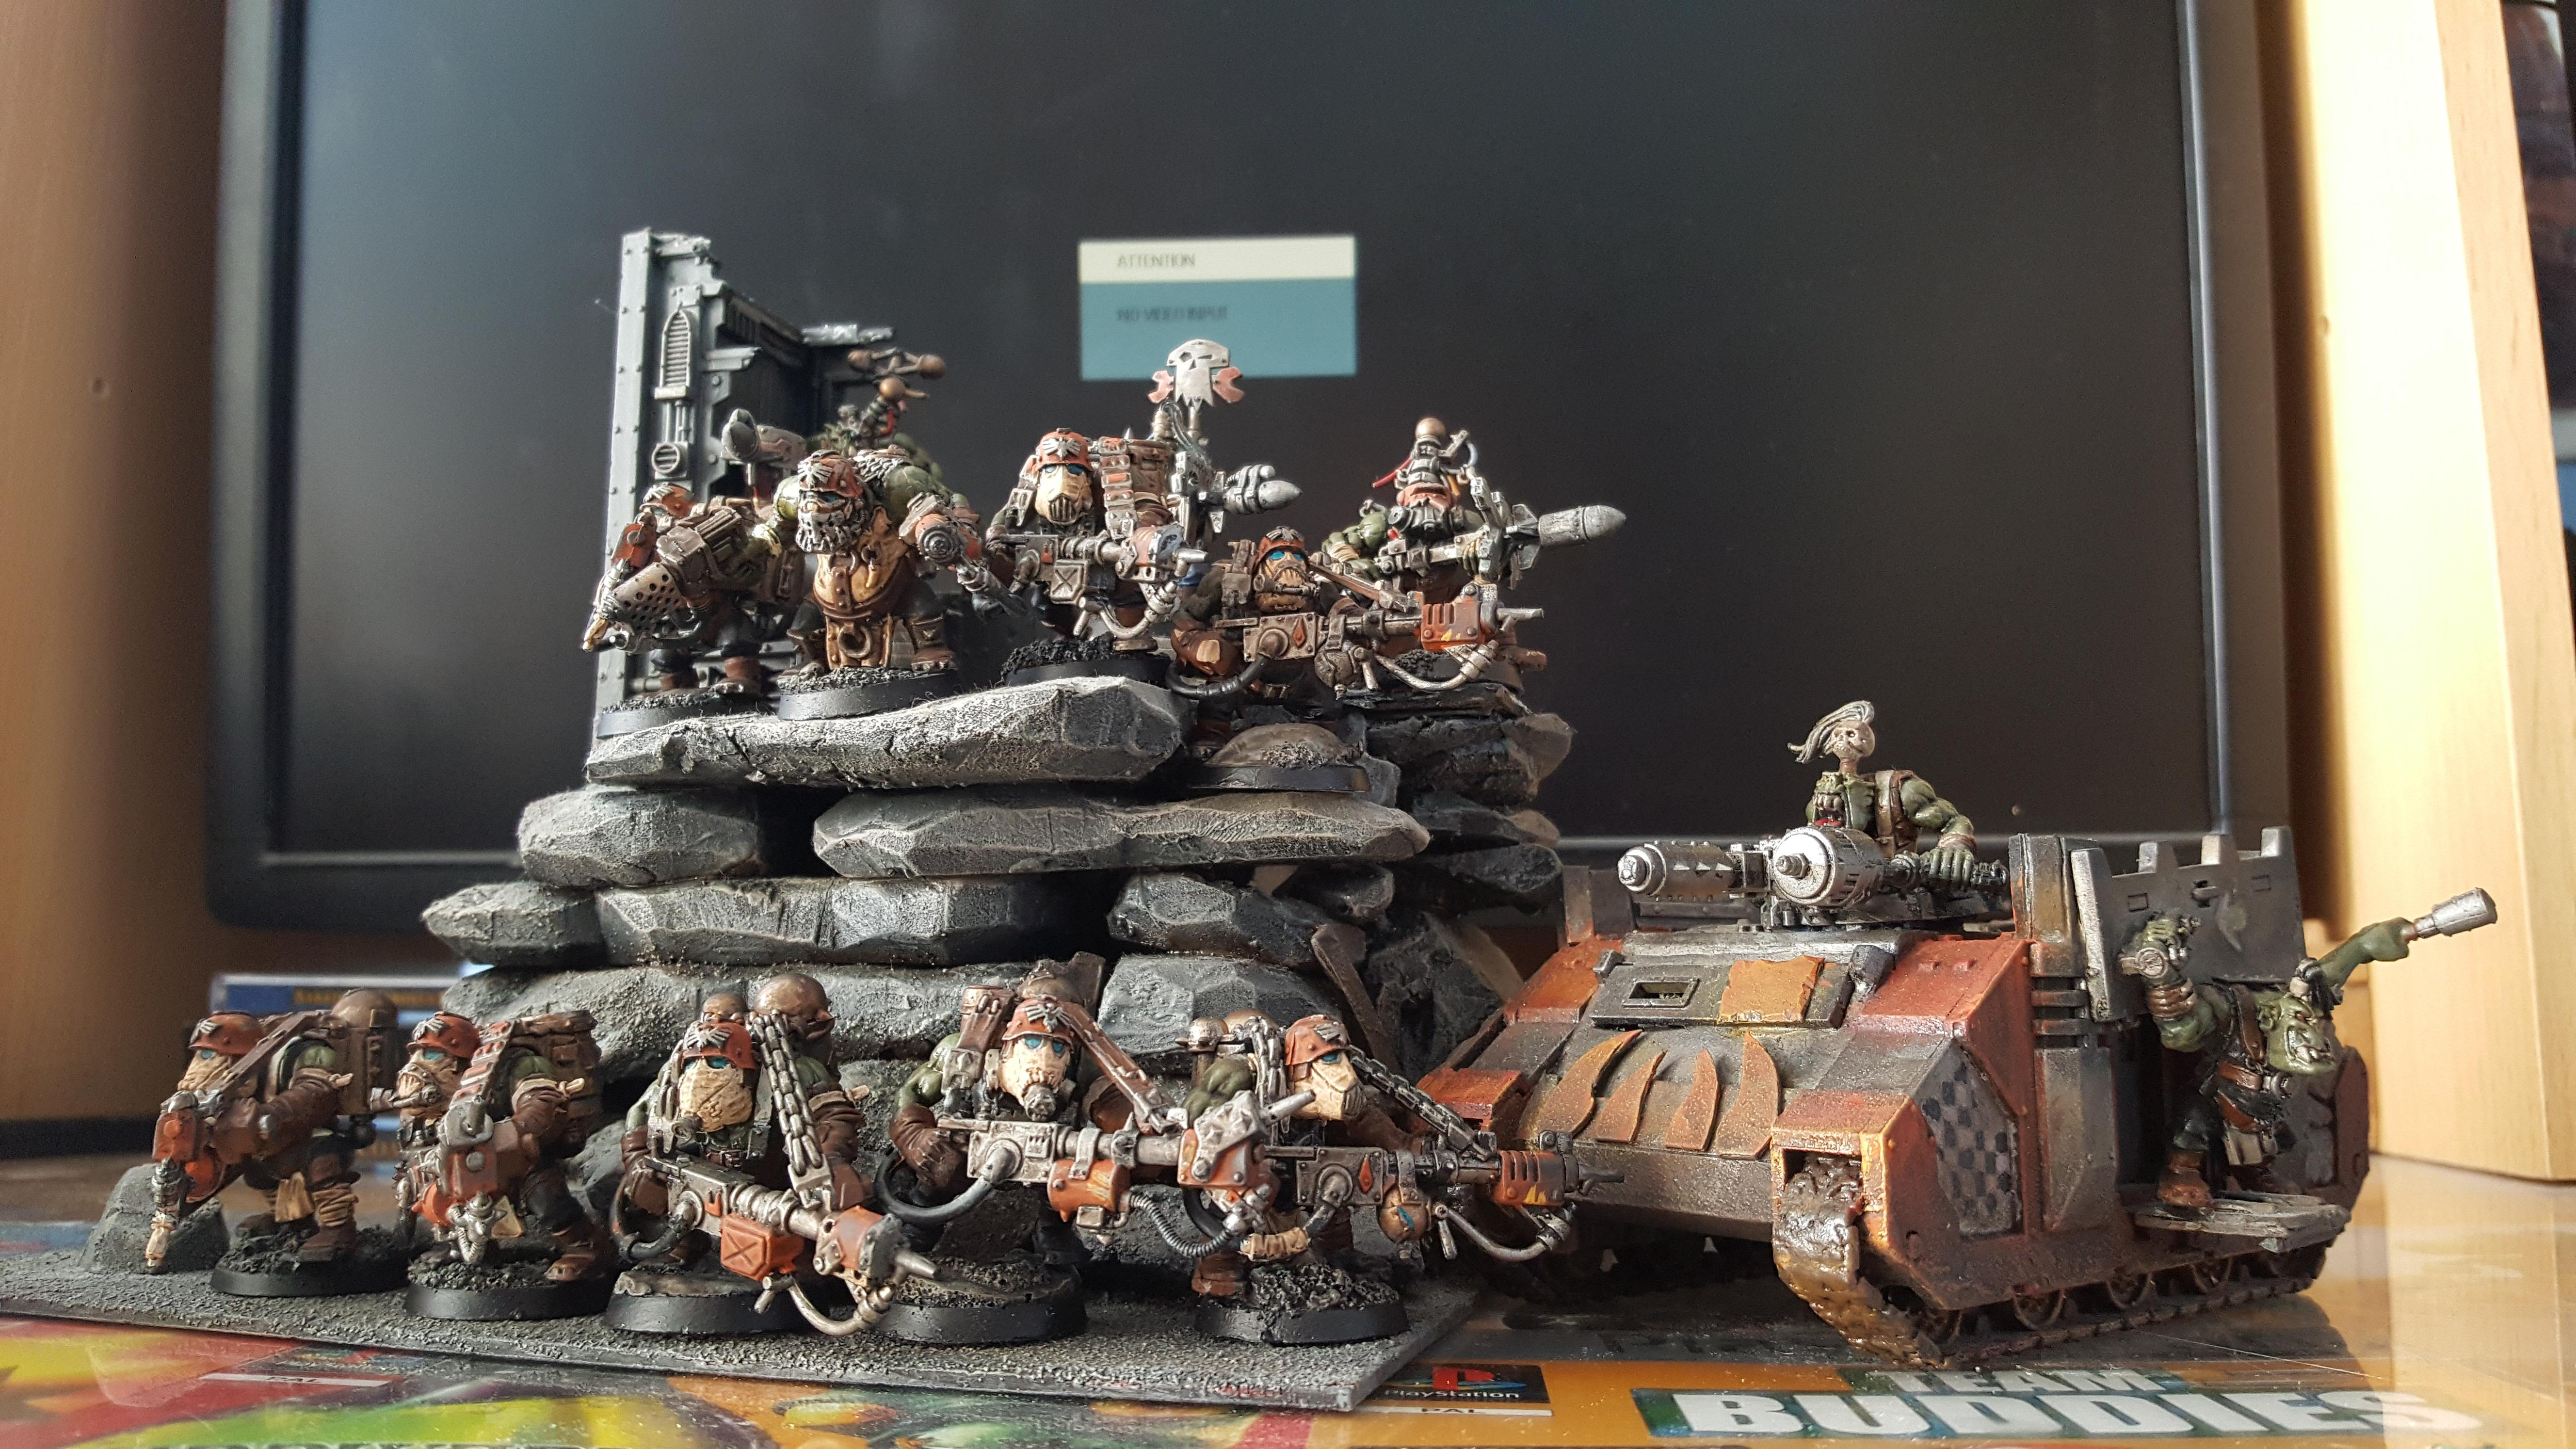 Boy, Boys, Burna Boyz, Conversion, Looted Wagon, Mekboy, Orange, Orks, Paintjob, Rhino, Rokkit, Trukk